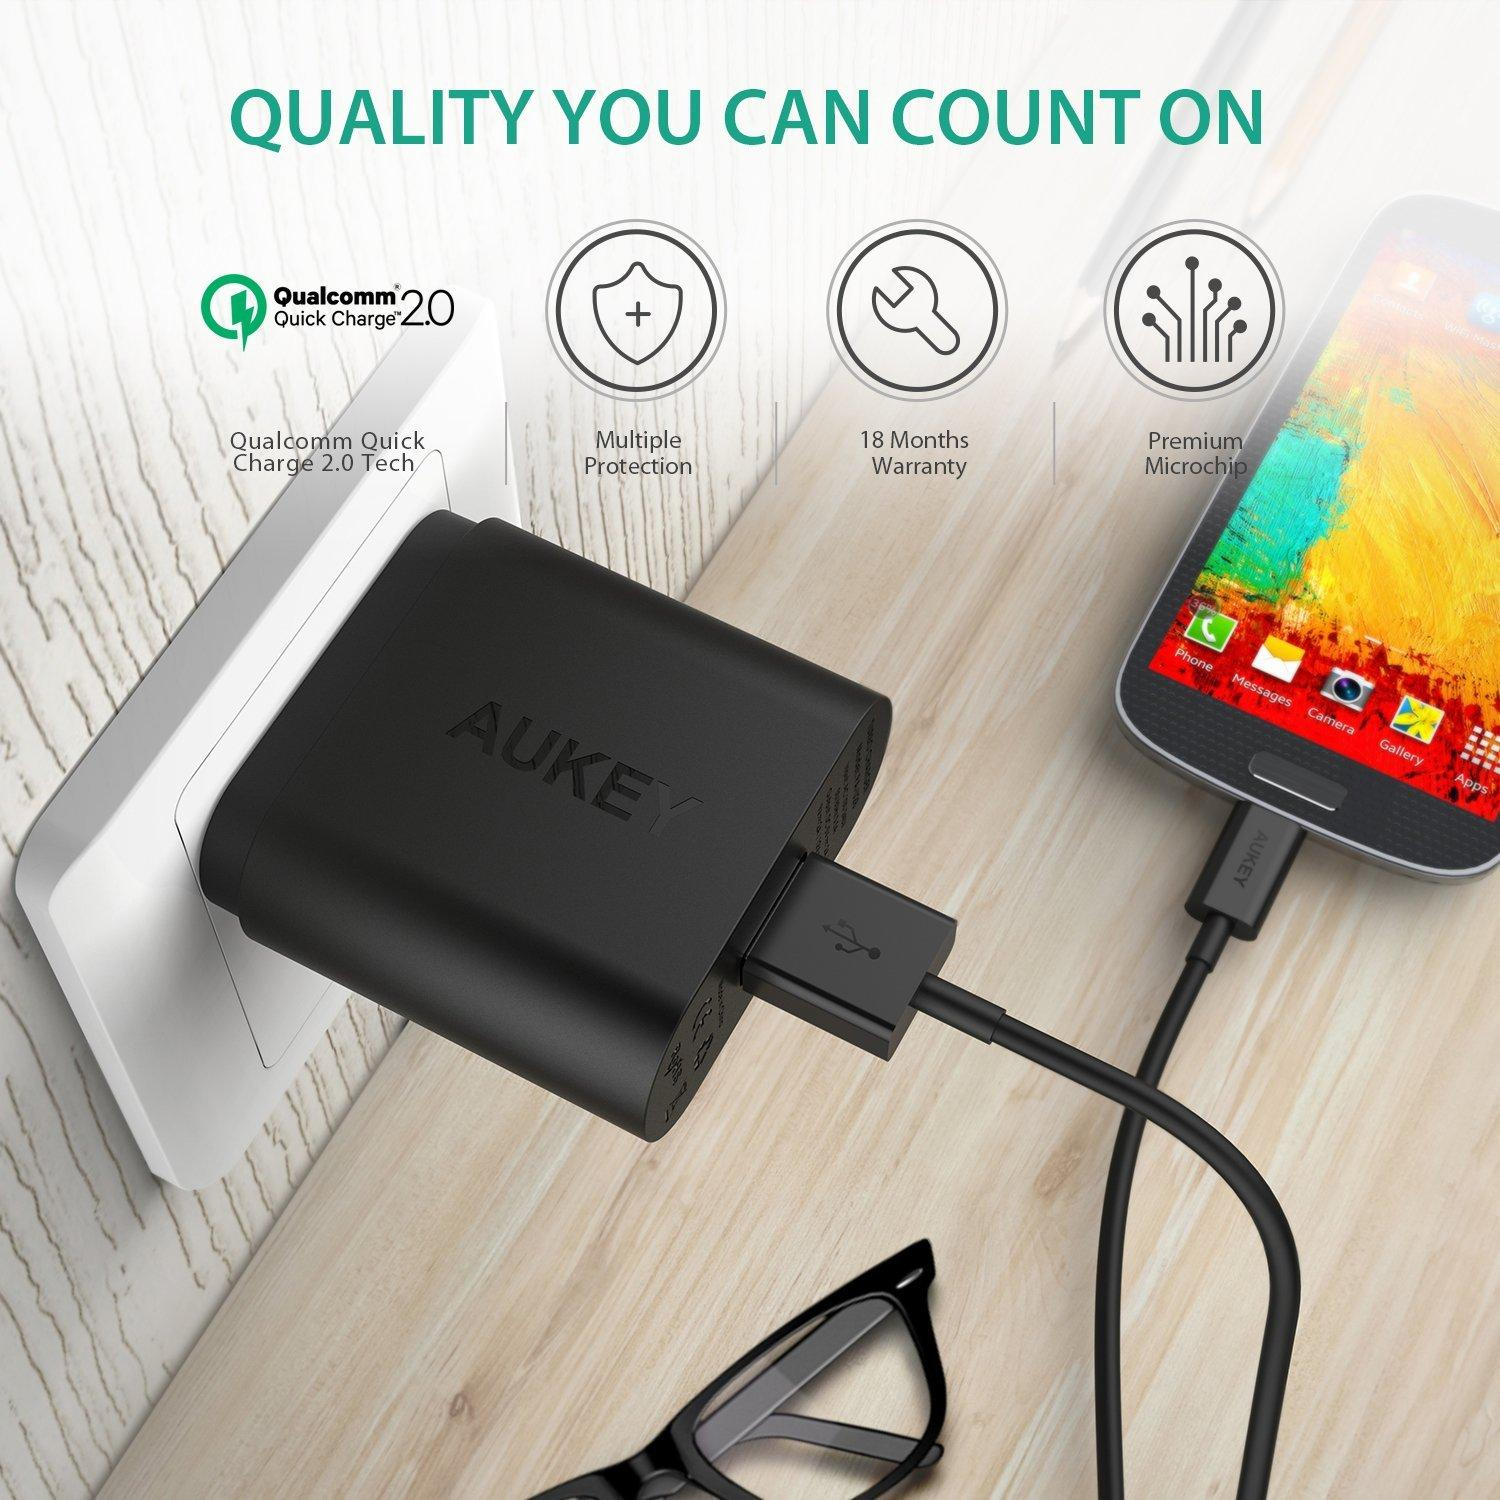 Aukey Quick Charge 2.0 18W USB Turbo Wall Charger Fast Charger (Black)